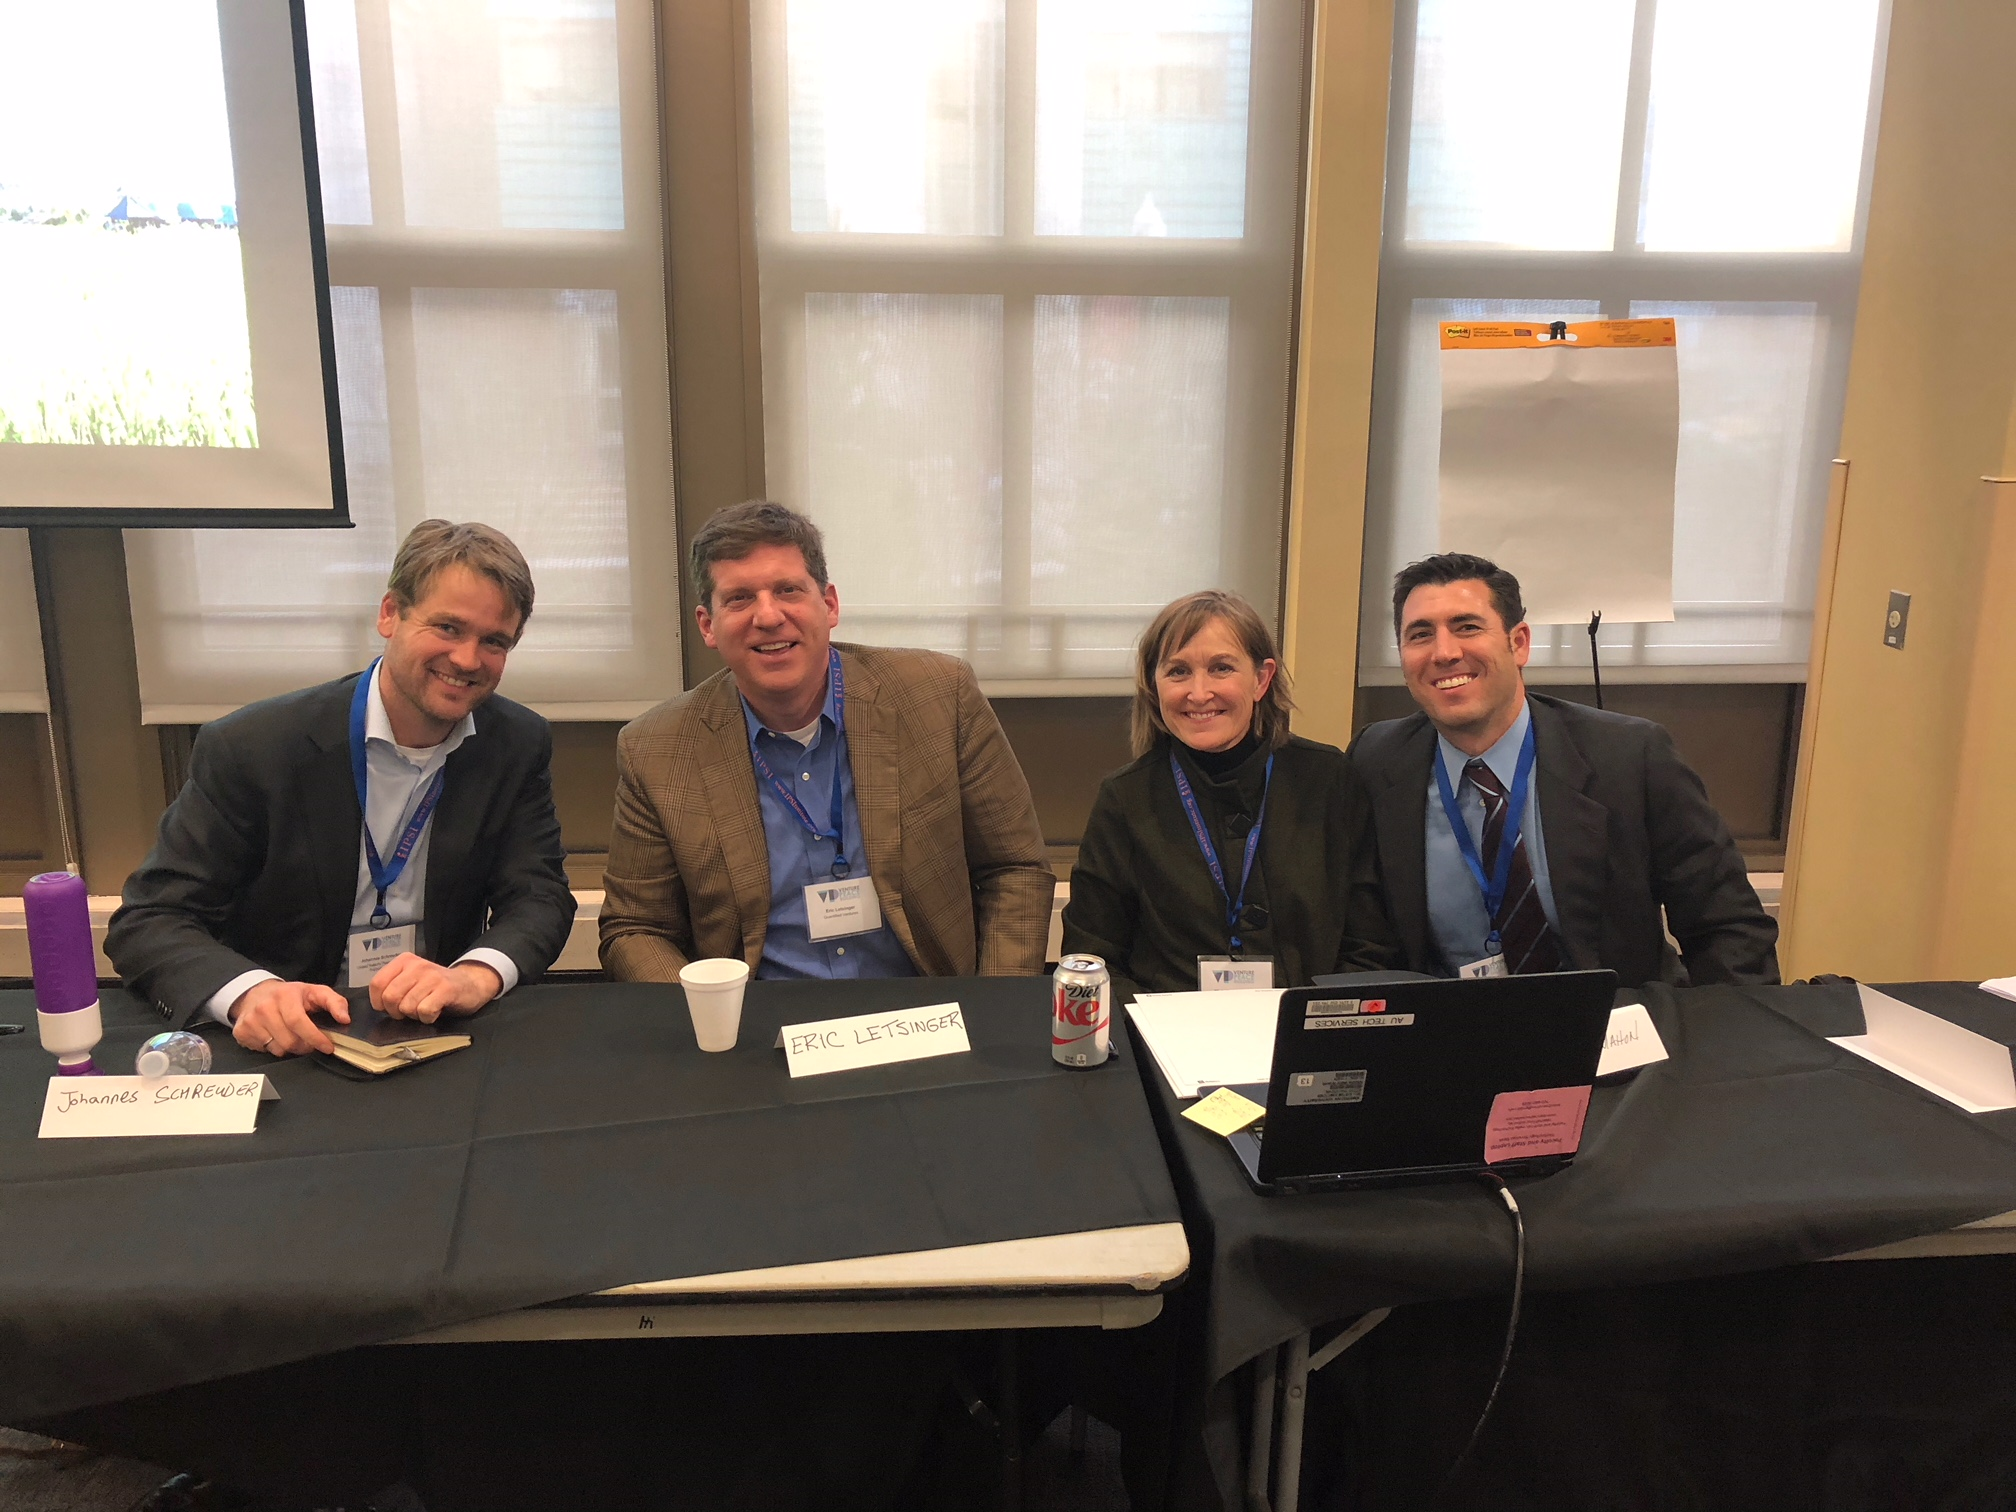 Johannes Schreuder (United Nations Peacebuilding Support Office), Eric Letsinger (Quantified Ventures), Michelle McMahon (Innovest Advisory), and Rabbi Joshua Ratner (Jlens Impact Investor Network)